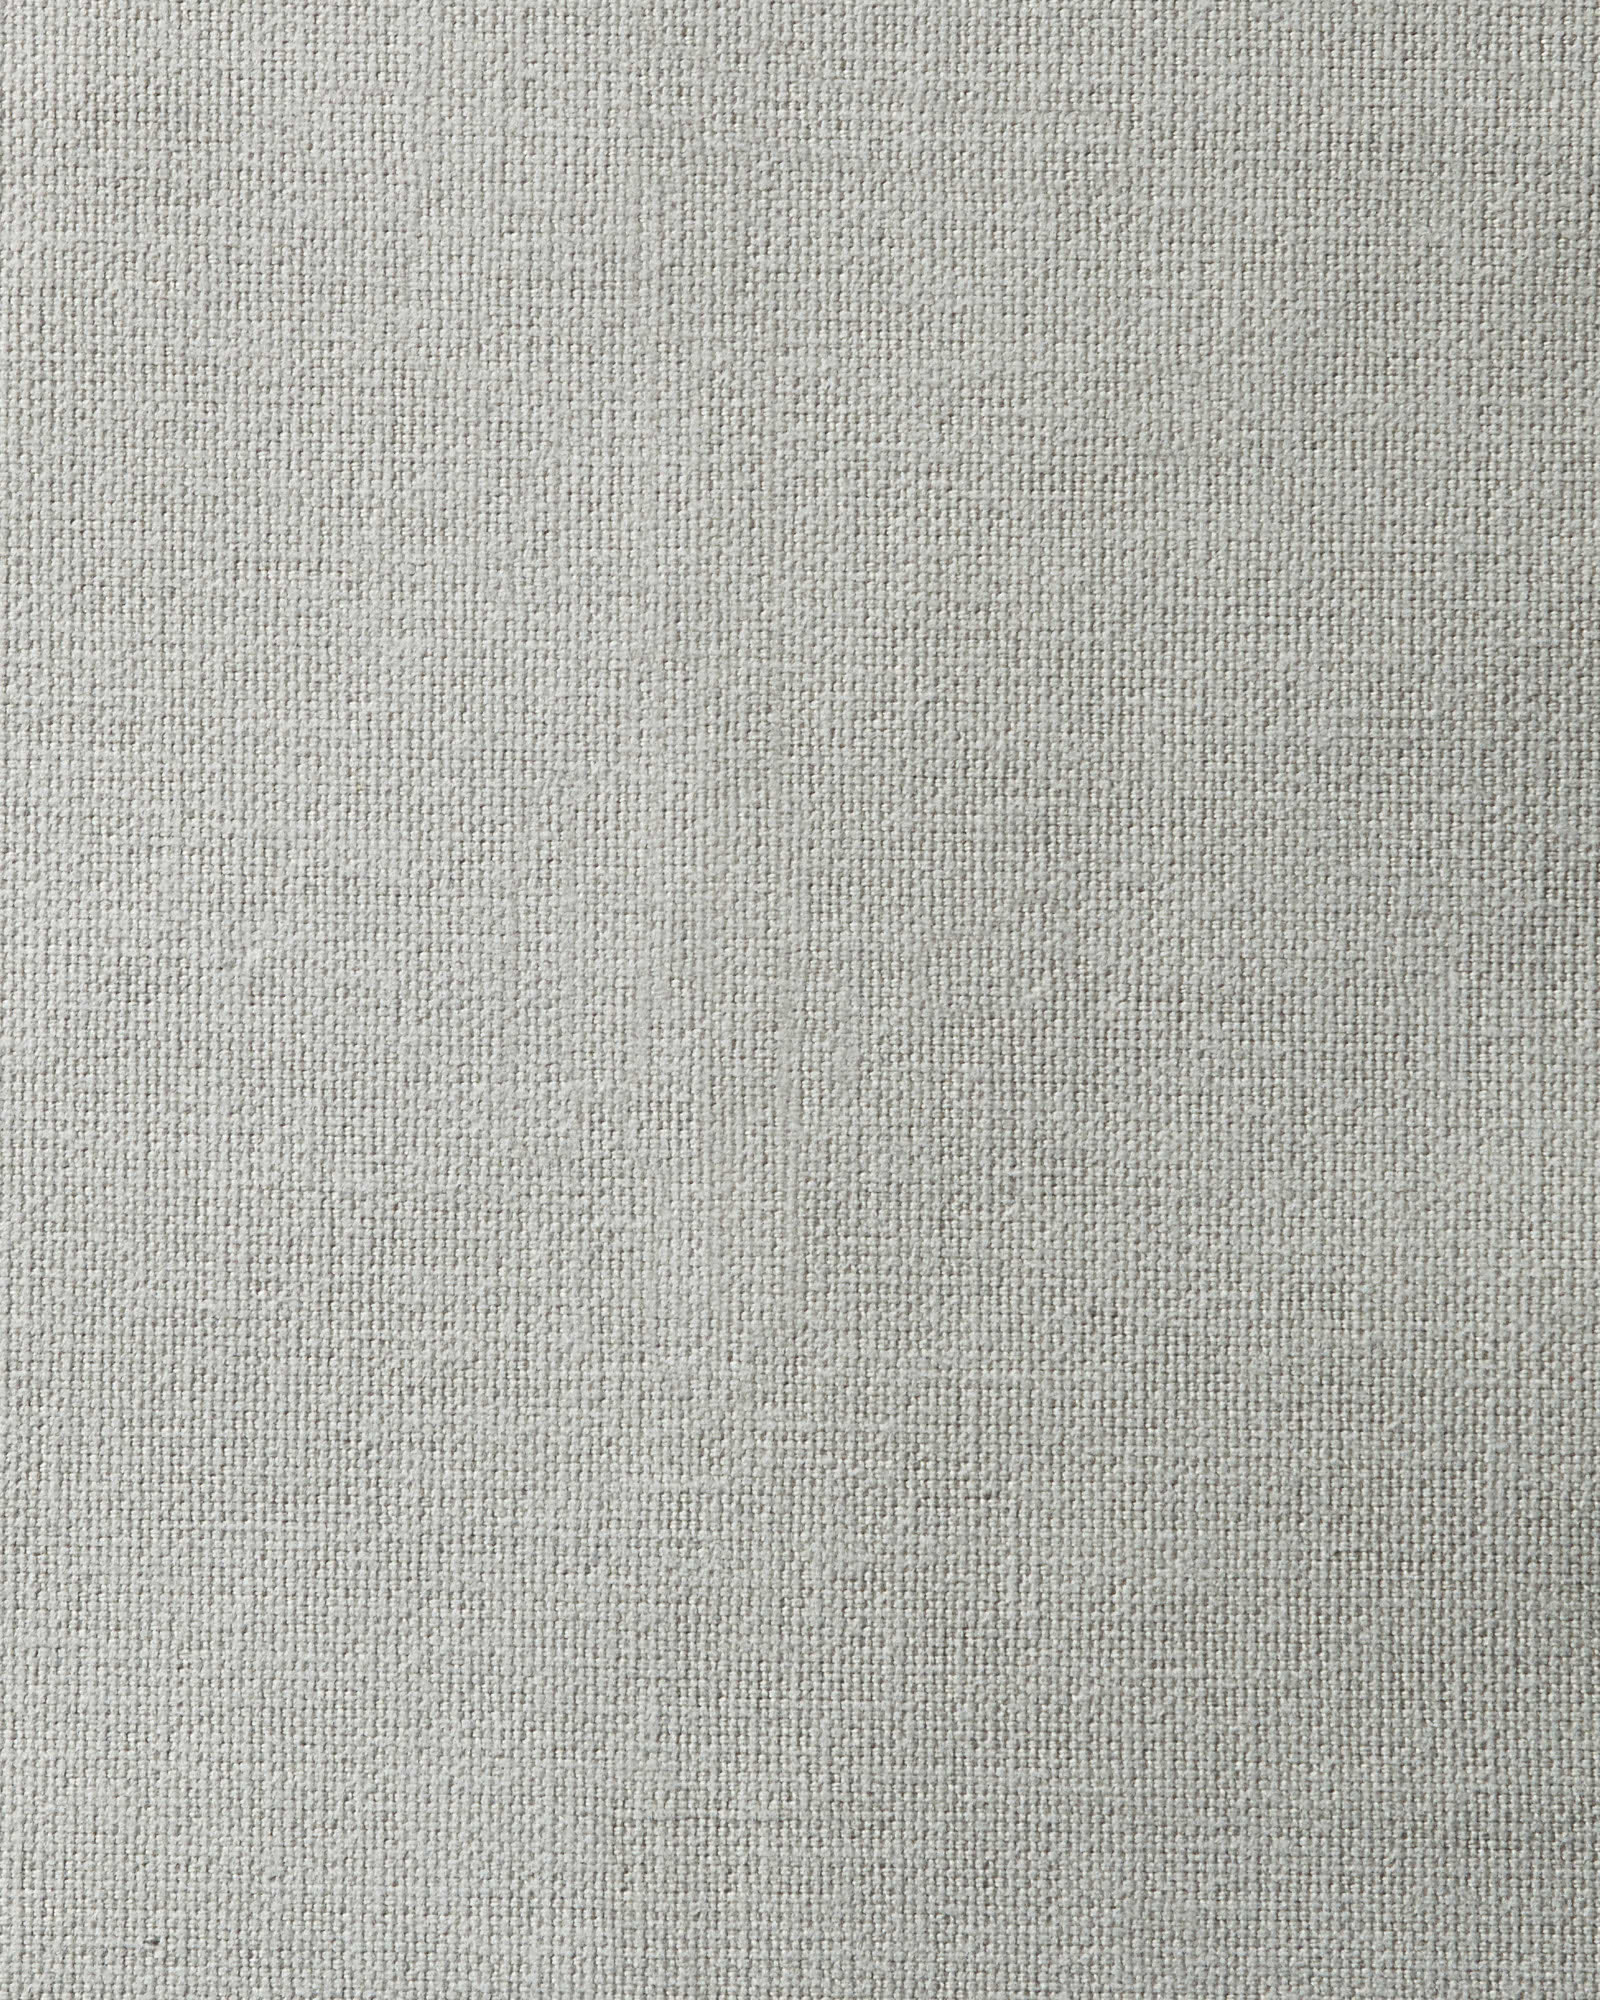 Fabric by the Yard – Brushed Cotton Canvas,